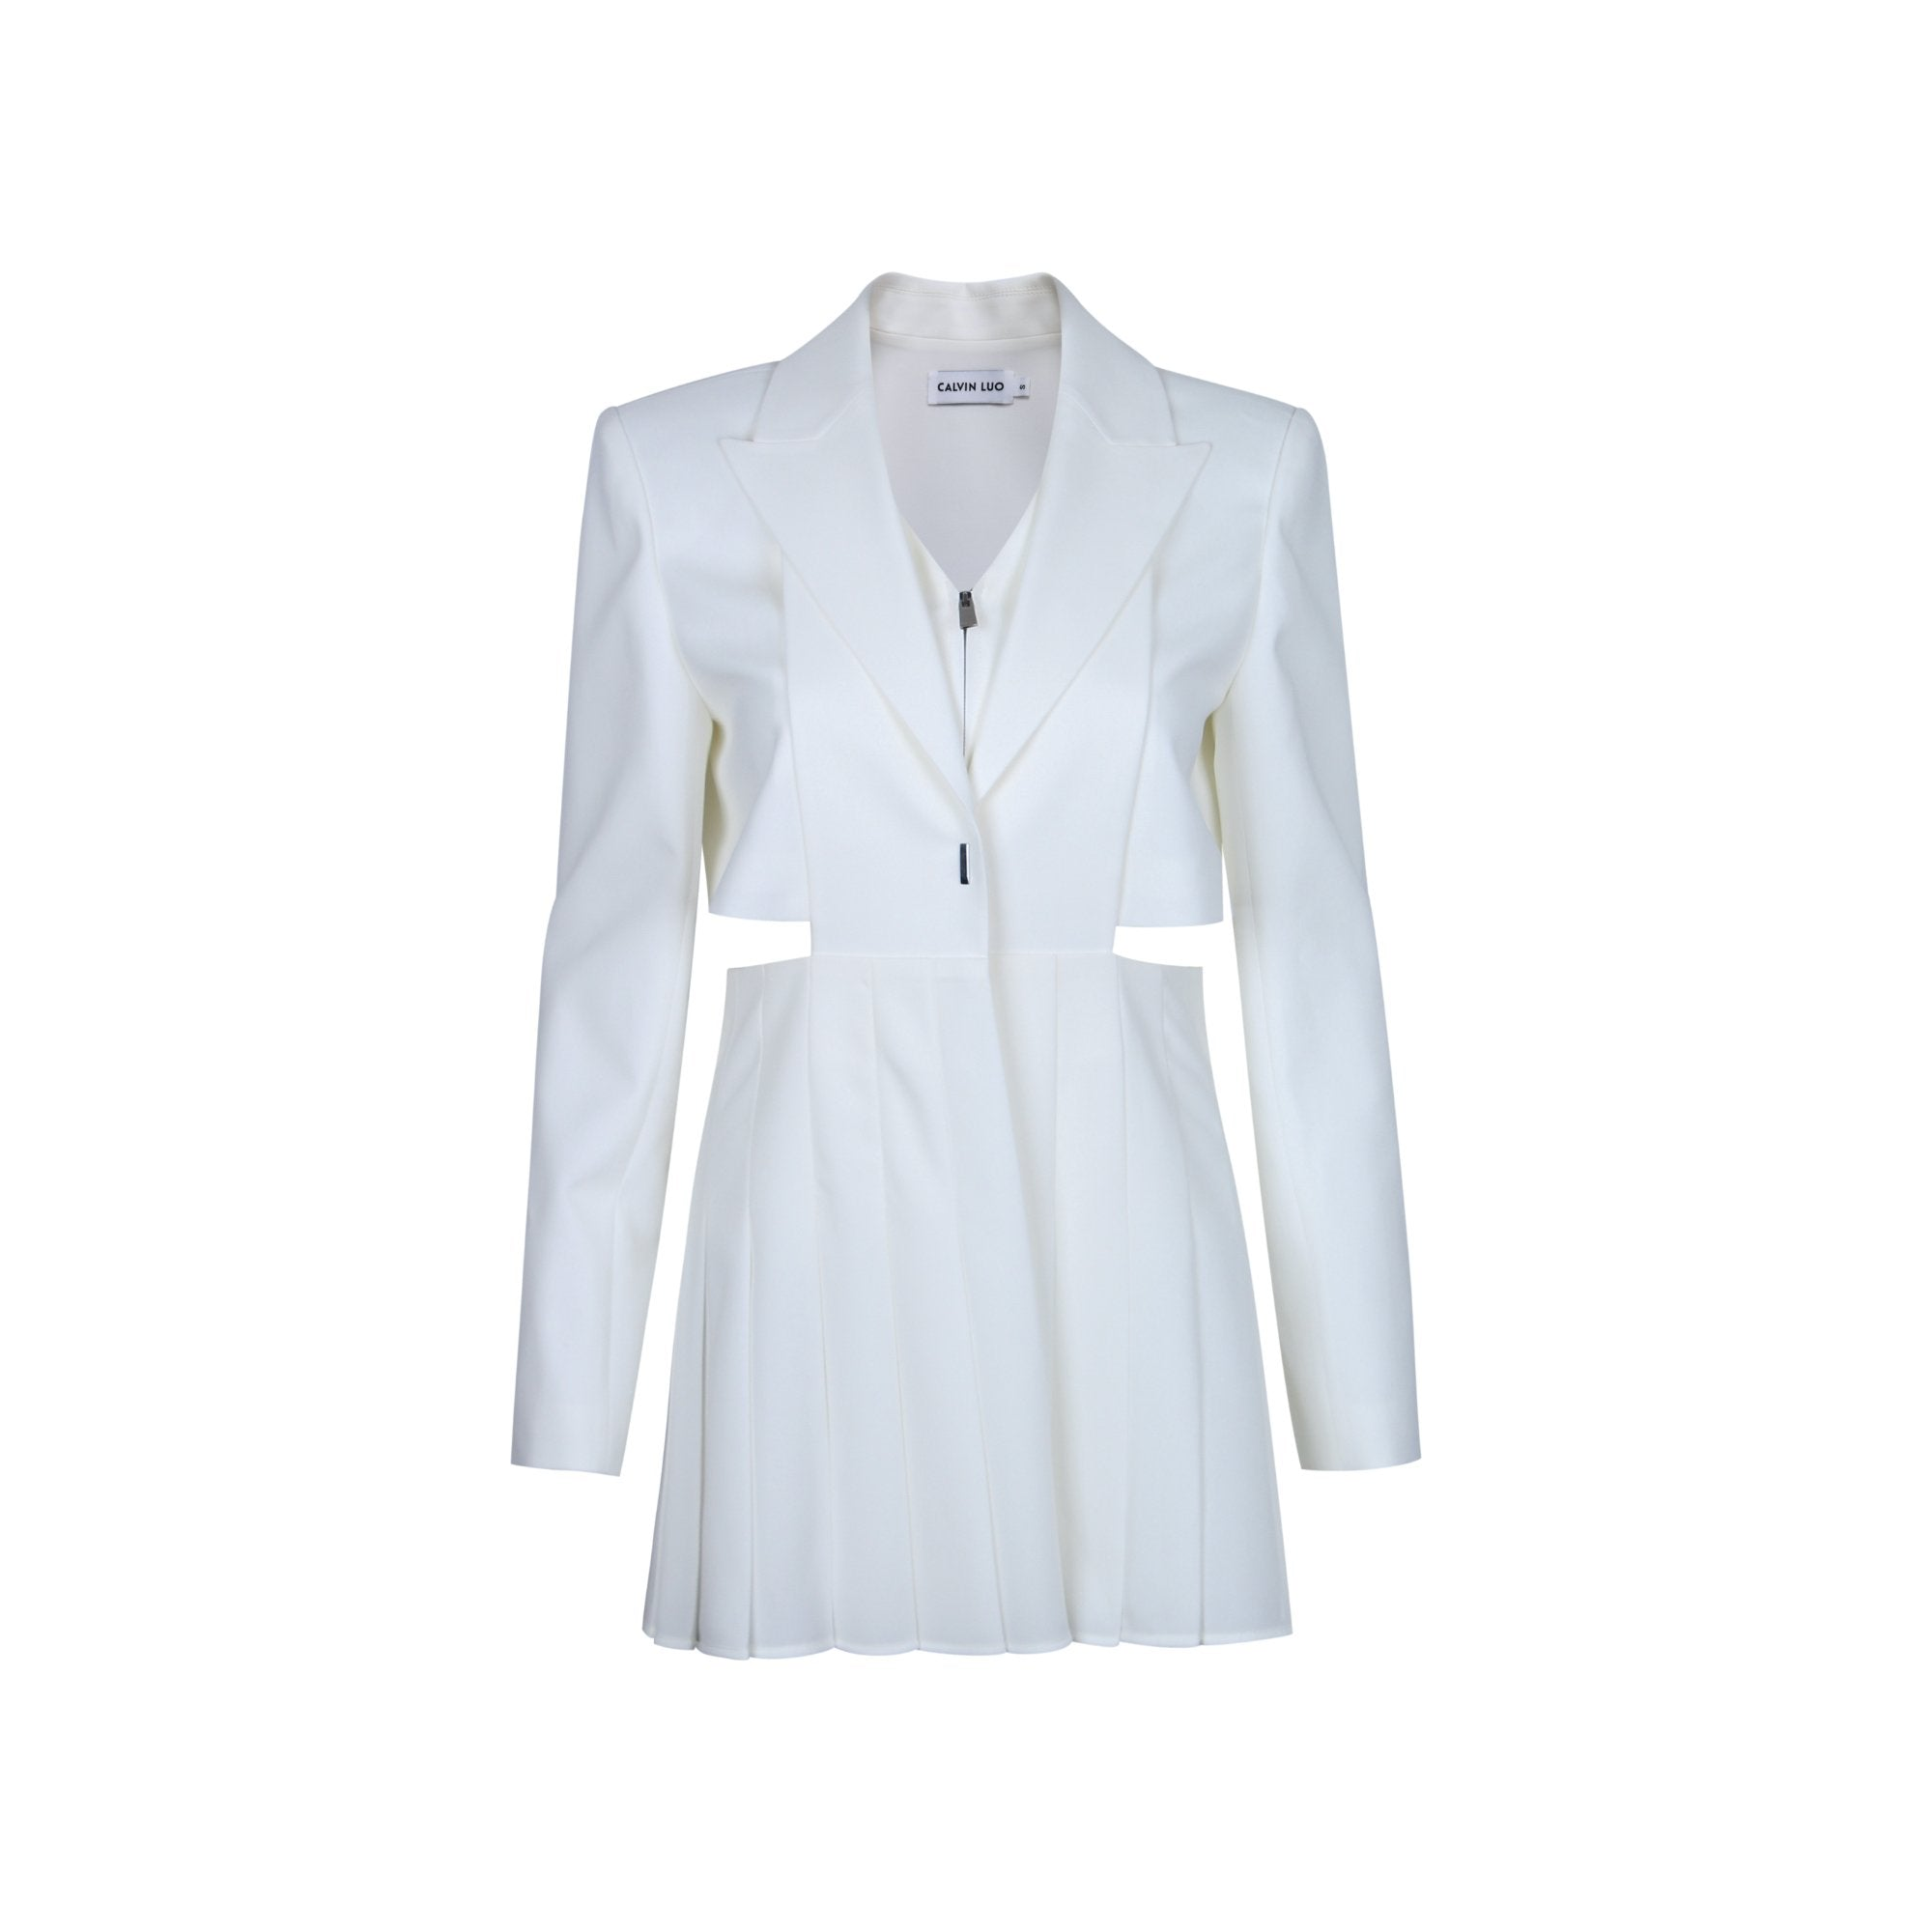 CALVIN LUO White Pleated Suit Set | MADA IN CHINA